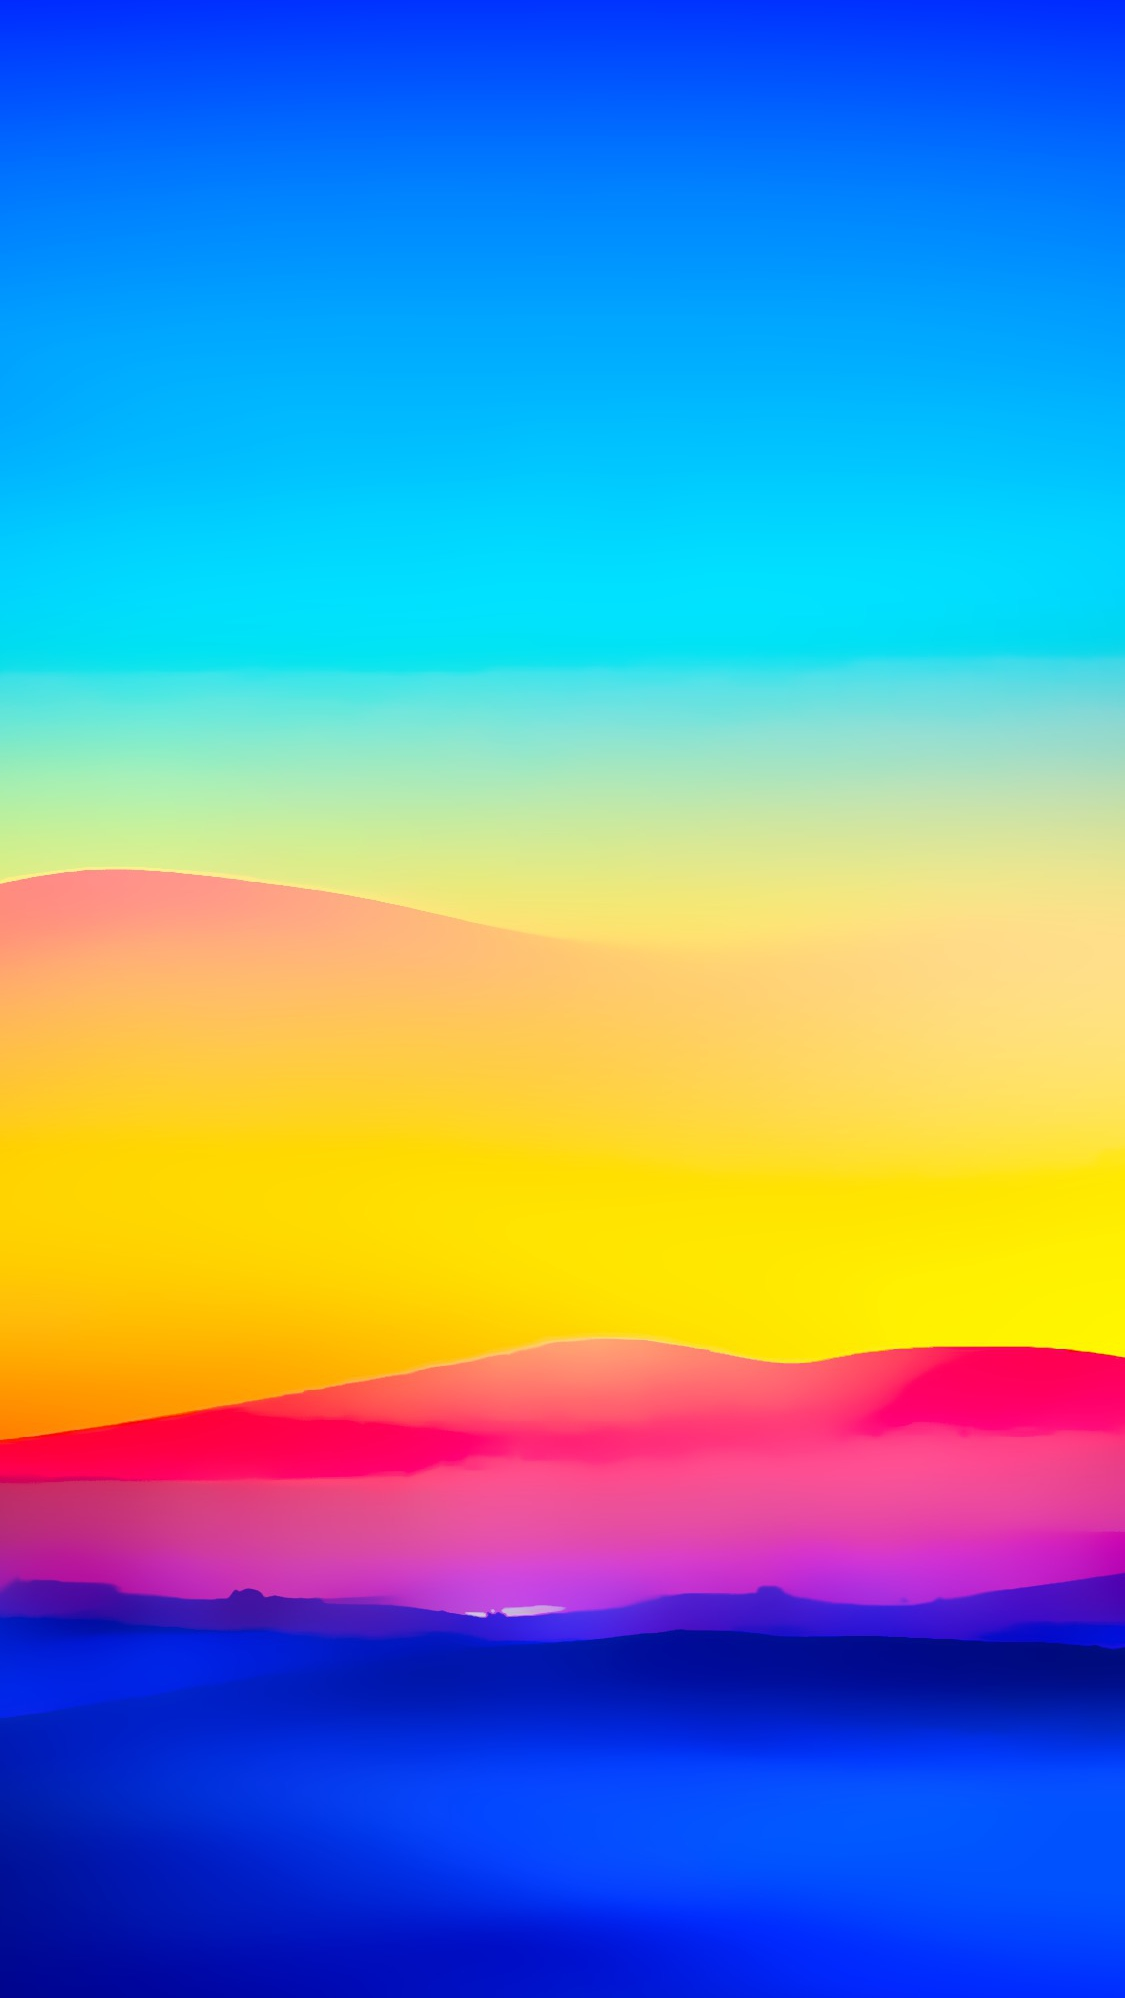 Colorful Sunrise Nature Mountains iPhone Wallpaper iphoneswallpapers com